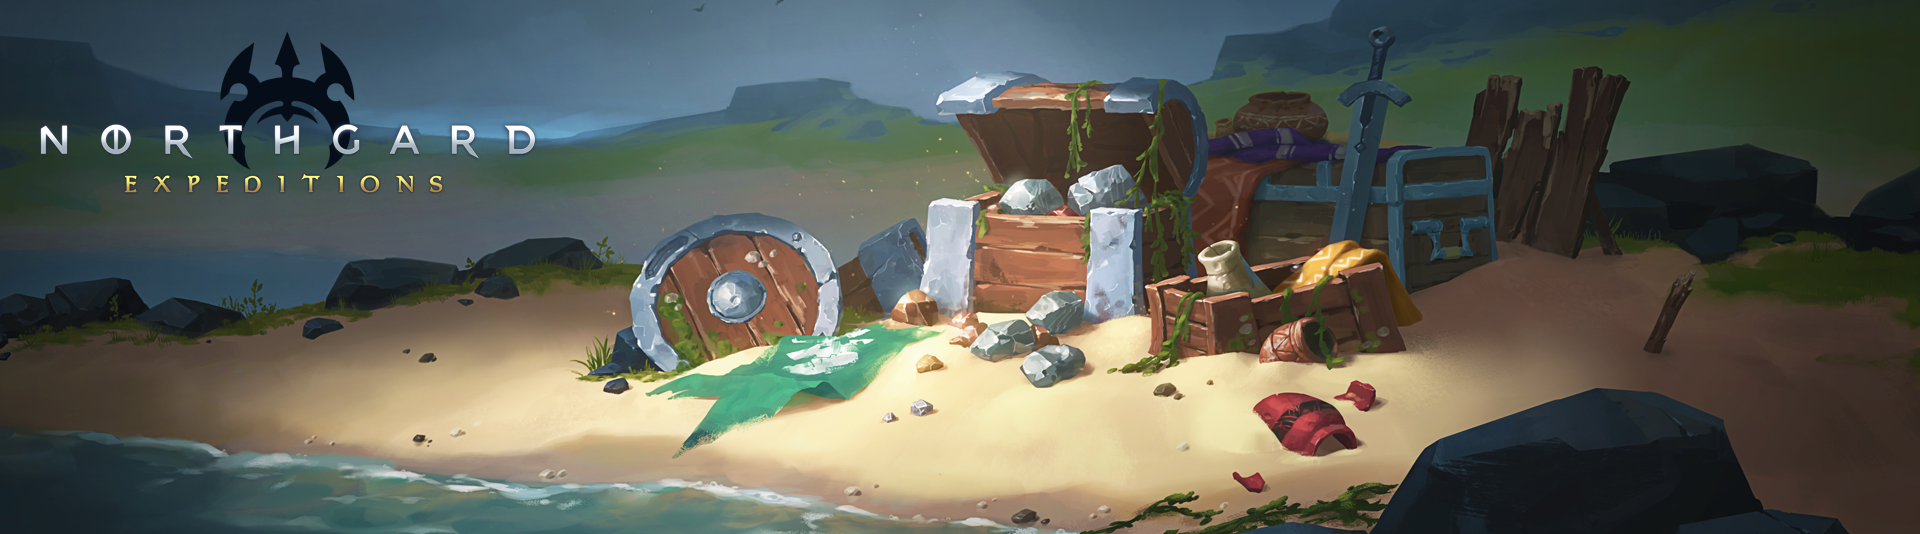 Northgard Expeditions Update